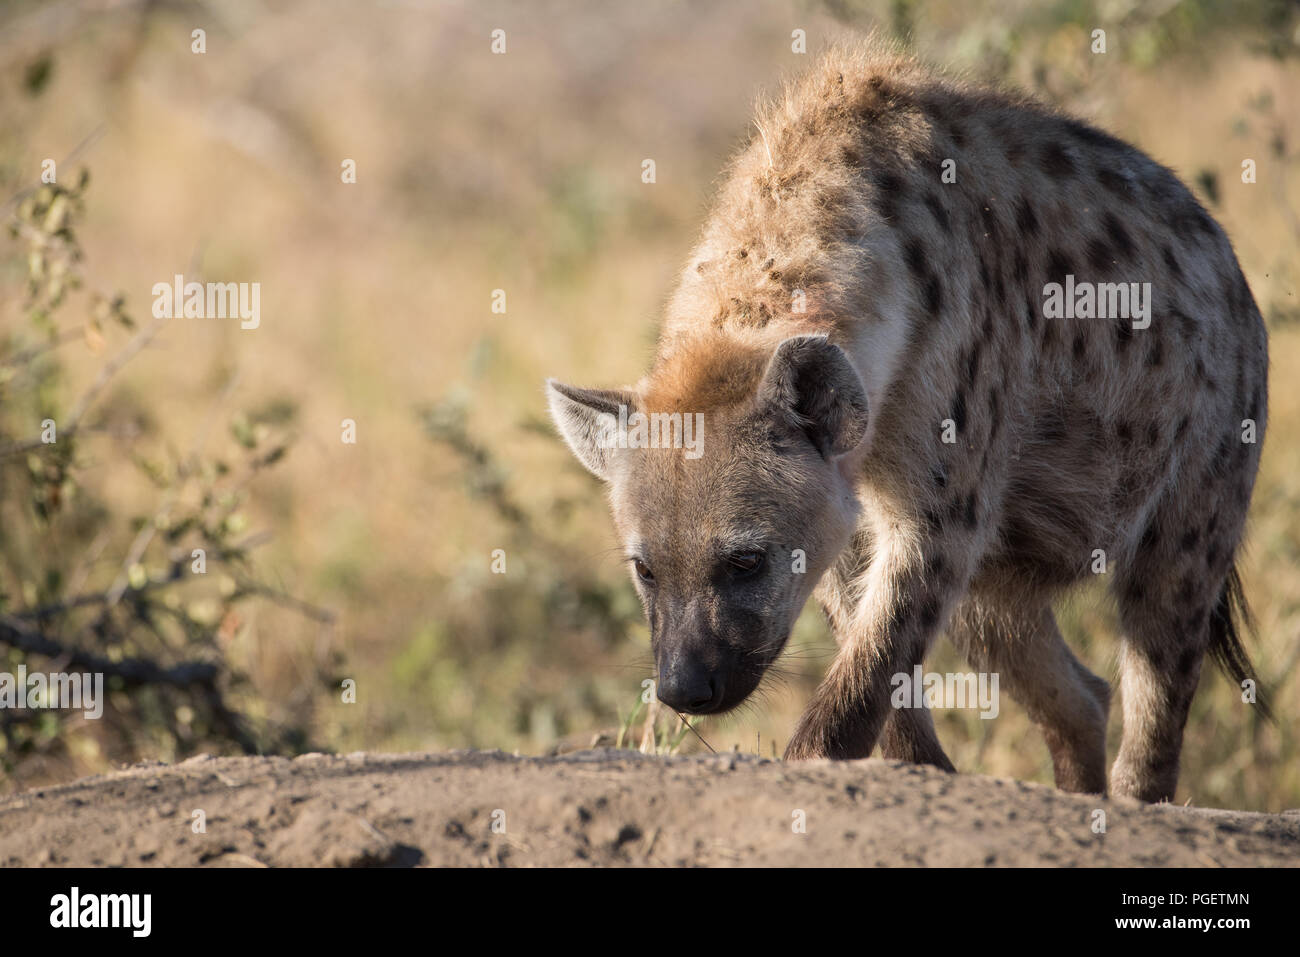 Front view of Spotted Hyena walking with head down is it sniffs the ground. - Stock Image